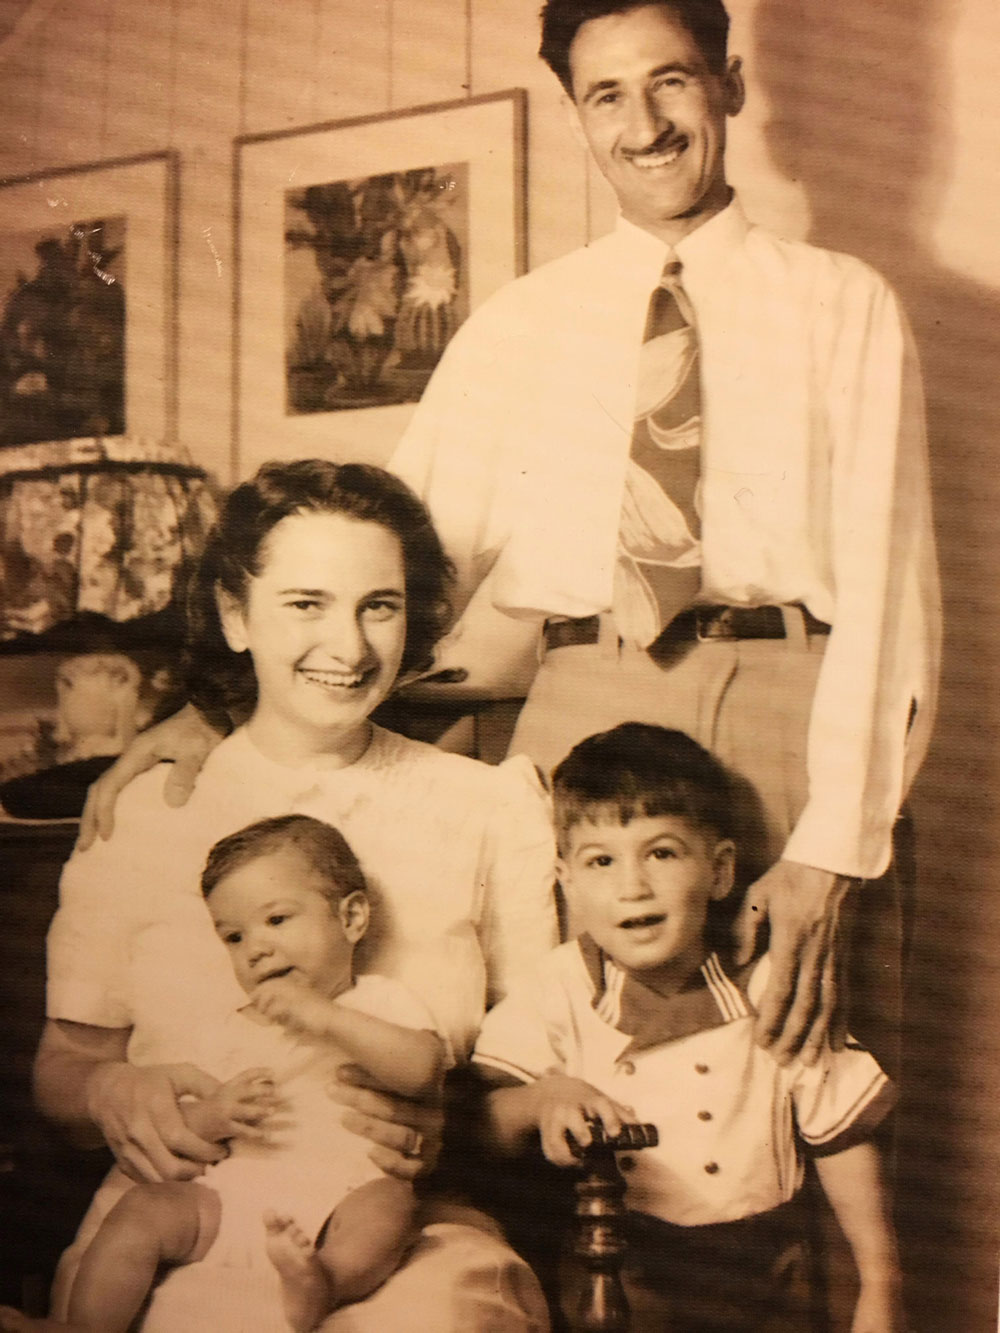 My grandmother, Zena, and her family